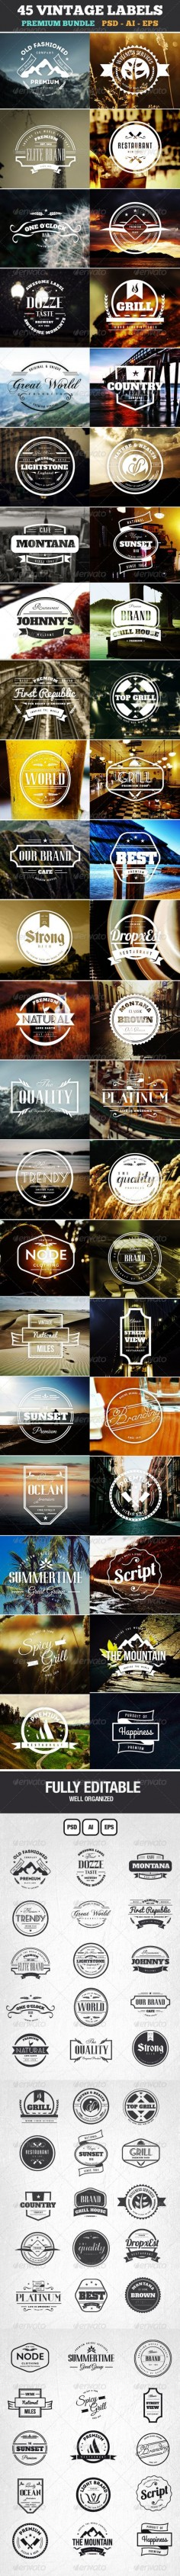 45 Vintage Labels  Badges Logos Bundle